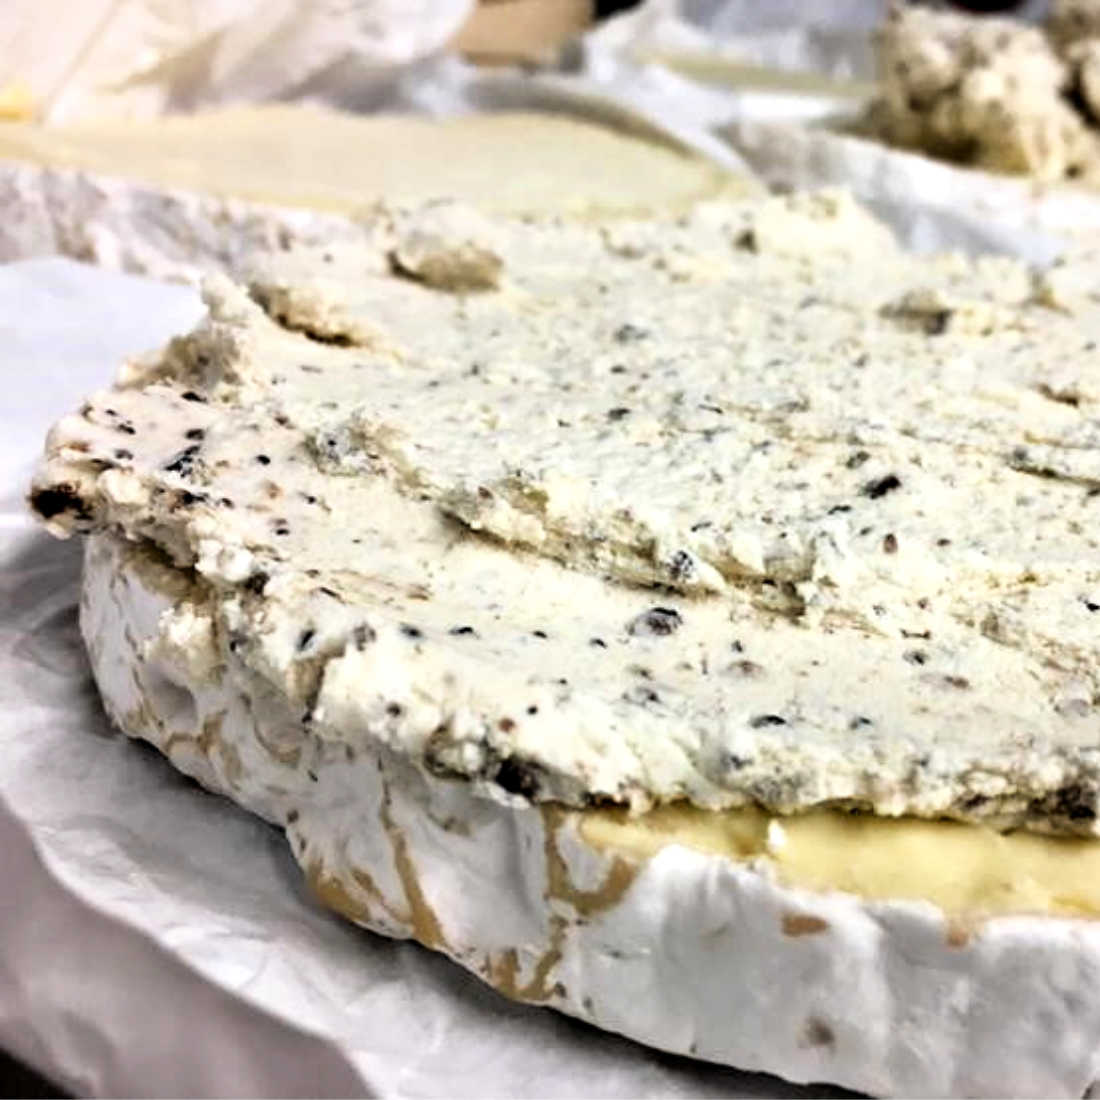 Making-Truffle-Brie-Spreading-Square-Low-Res